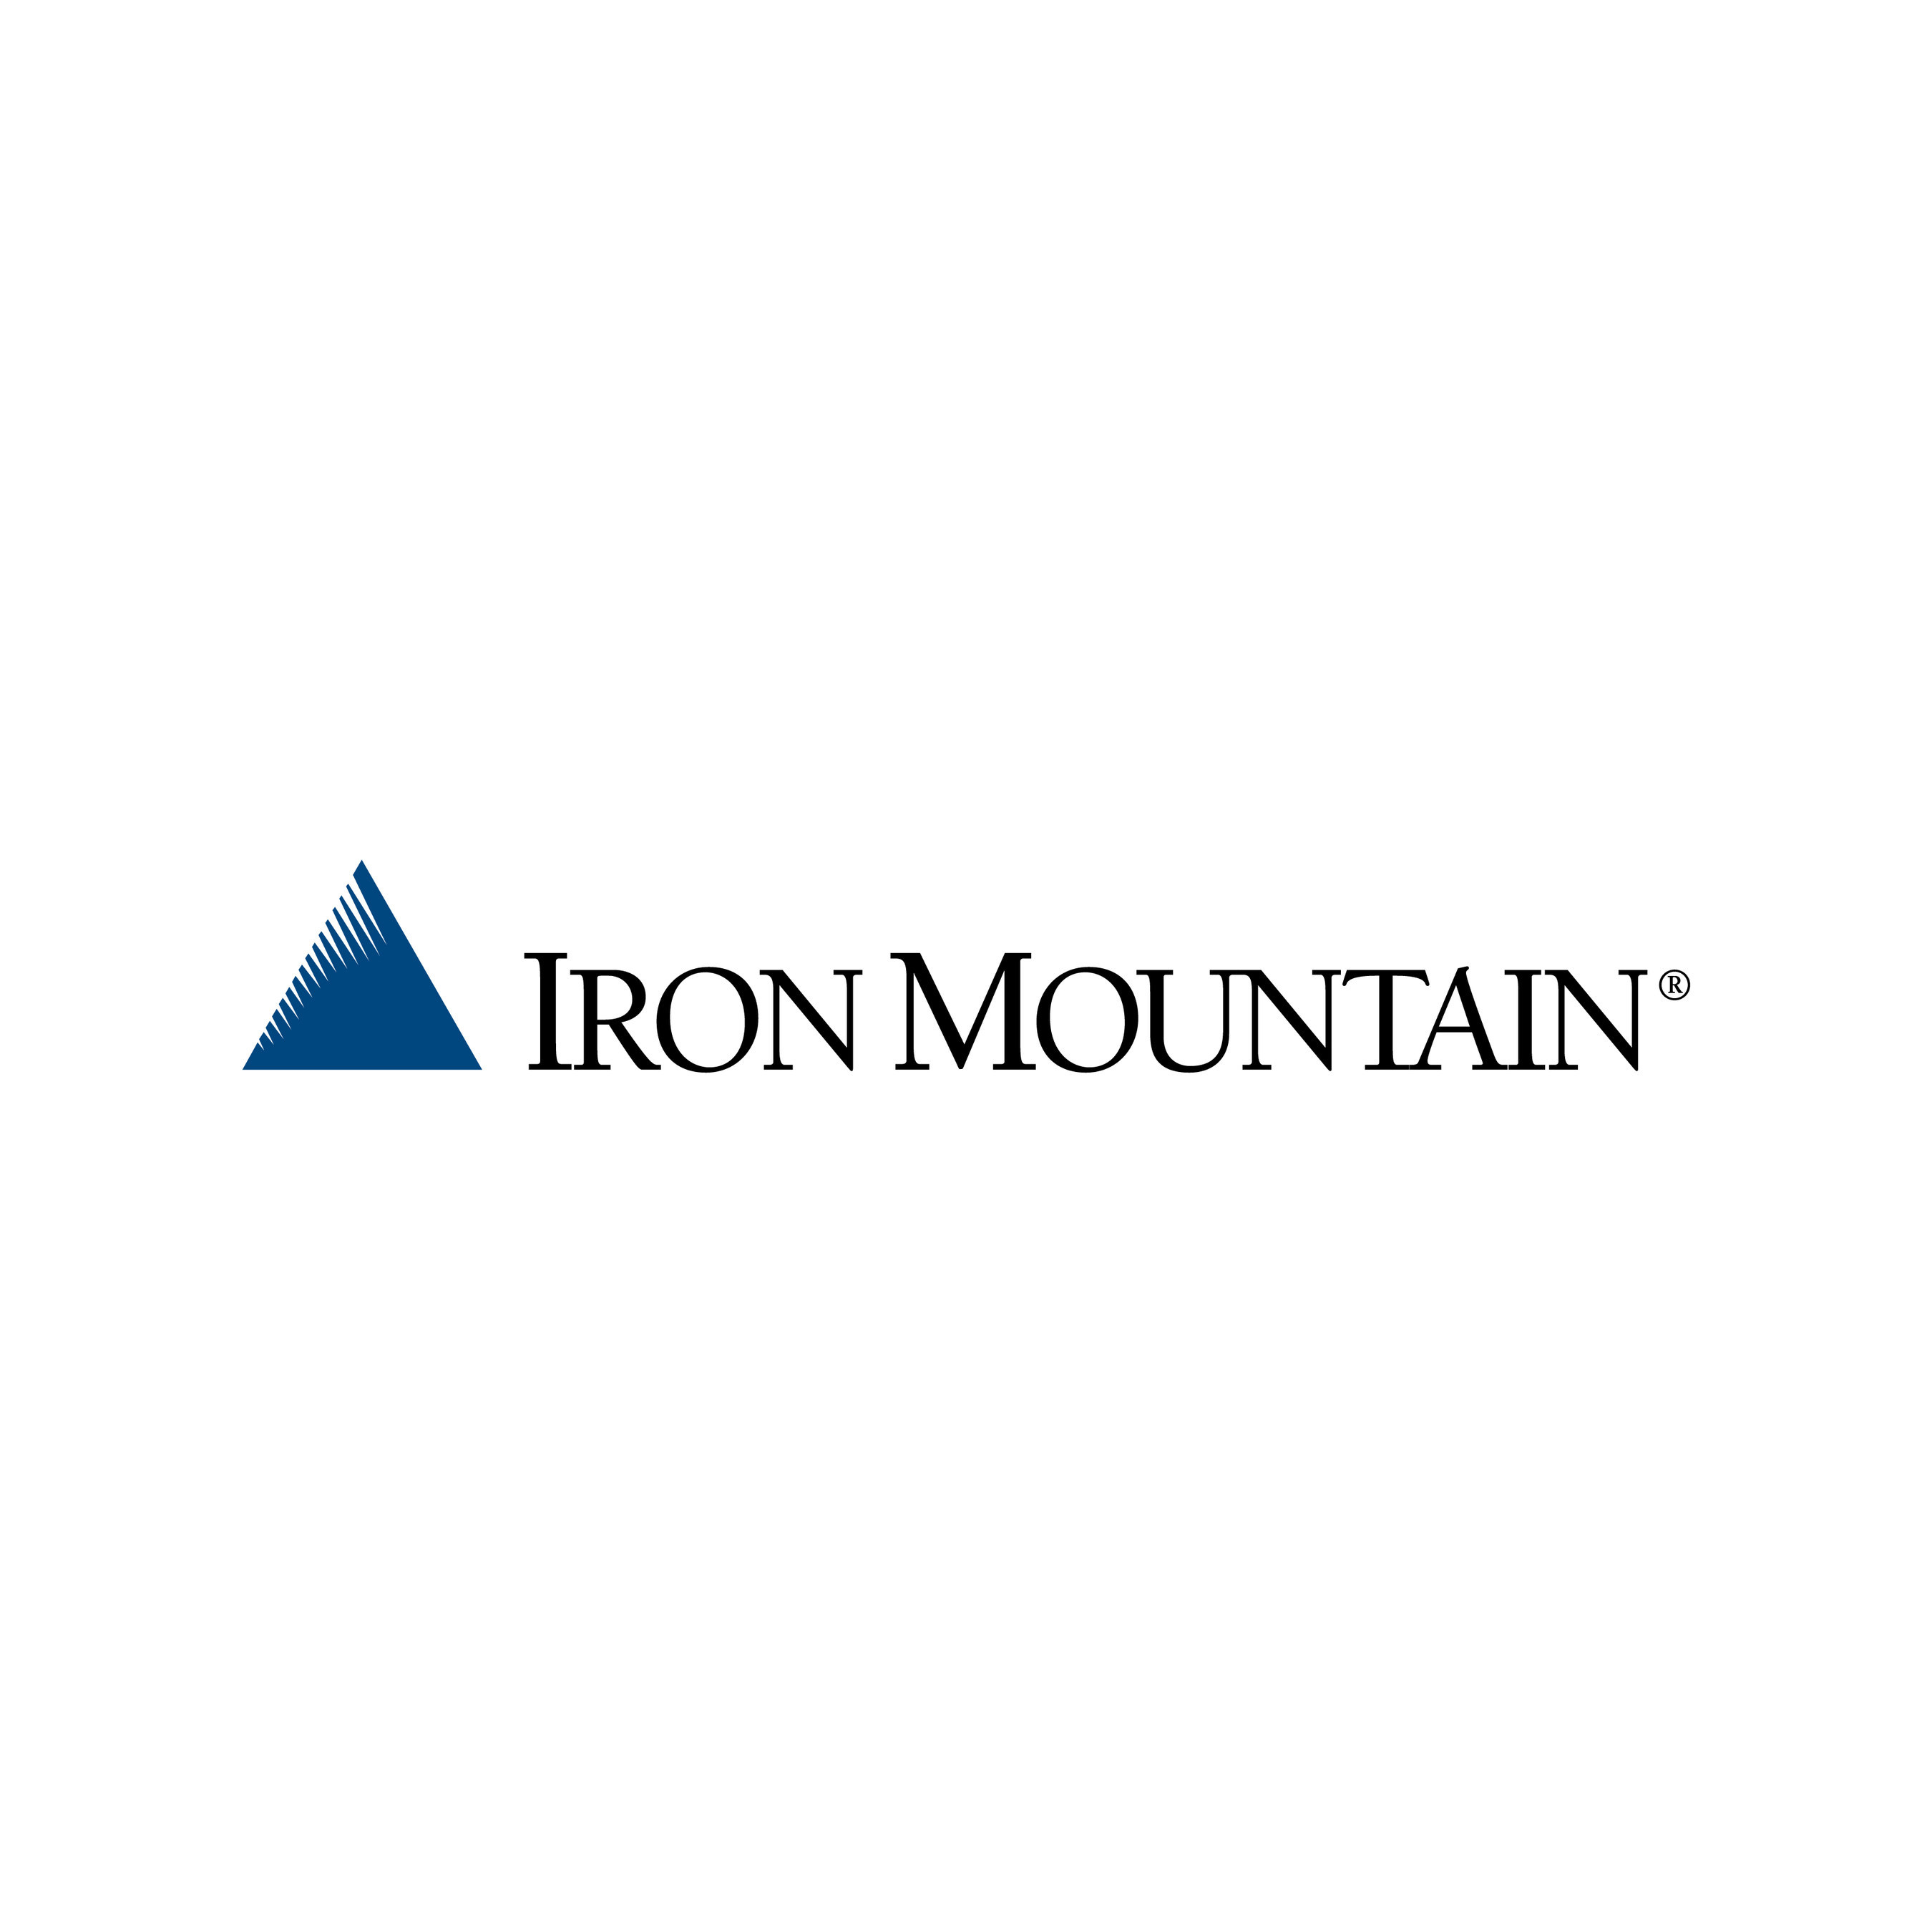 Iron Mountain Inc.